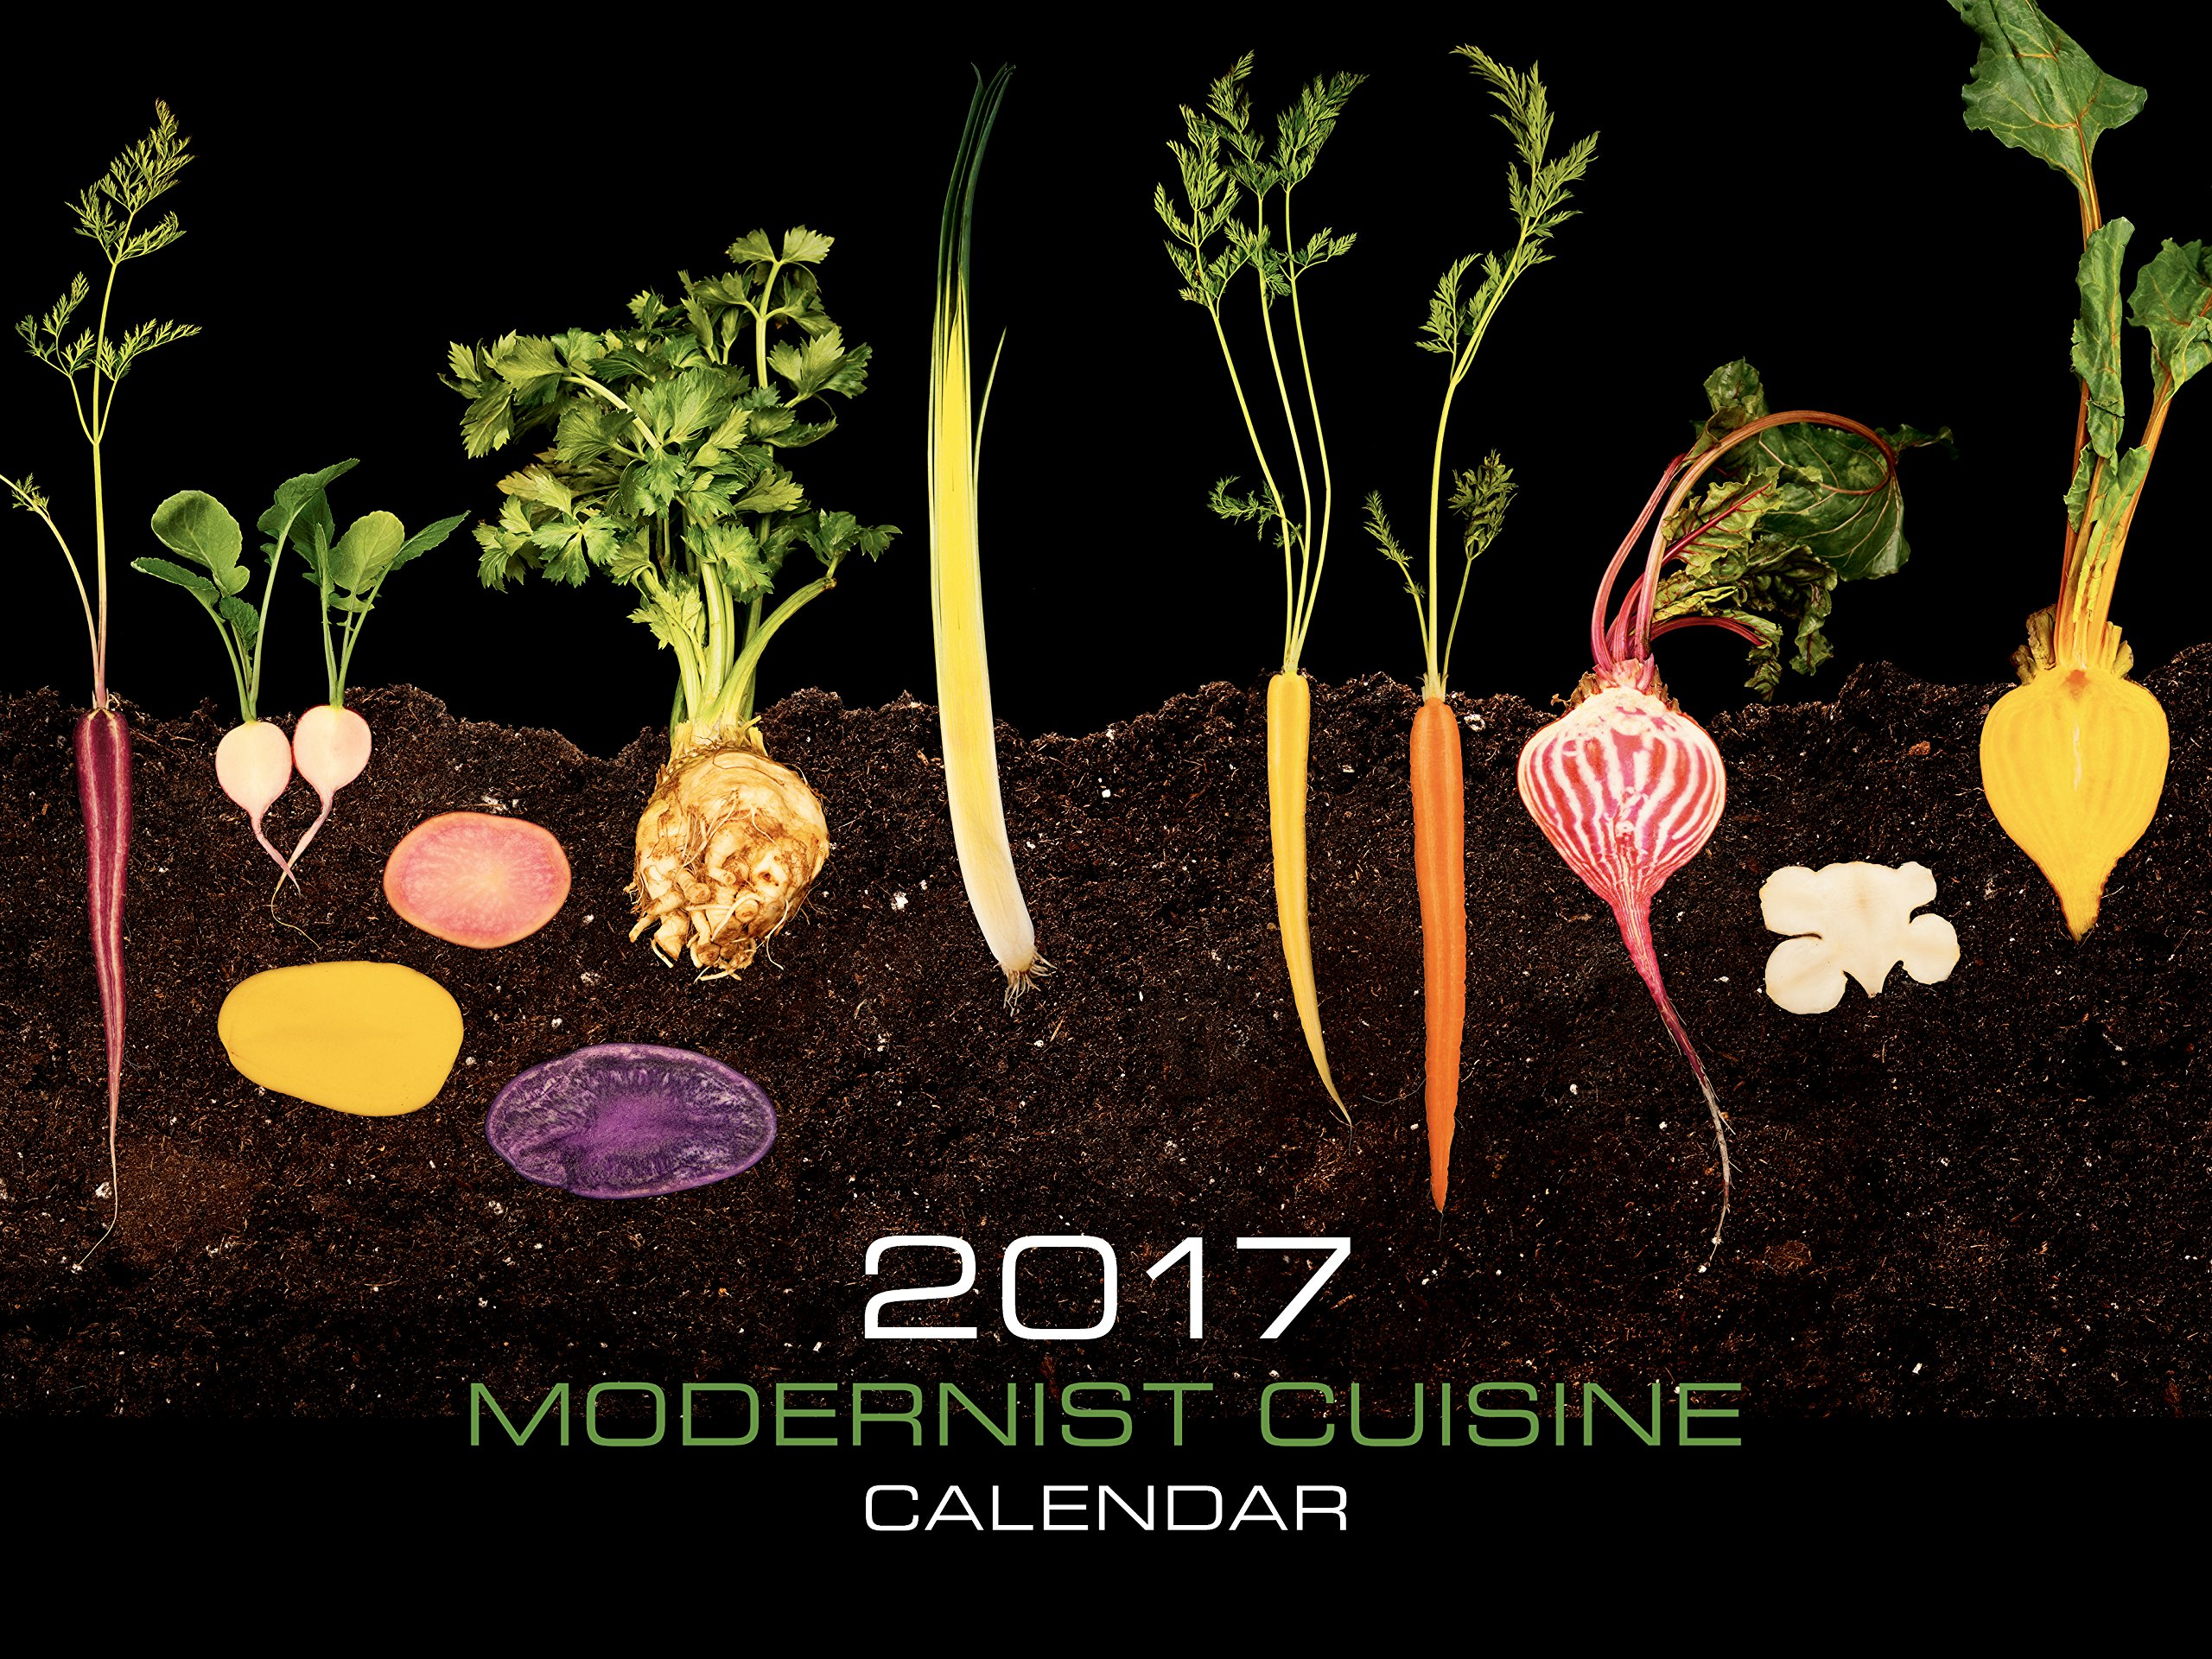 Exceptionnel Modernist Cuisine 2017 Wall Calendar: Nathan Myhrvold: 9780982761076:  Amazon.com: Books